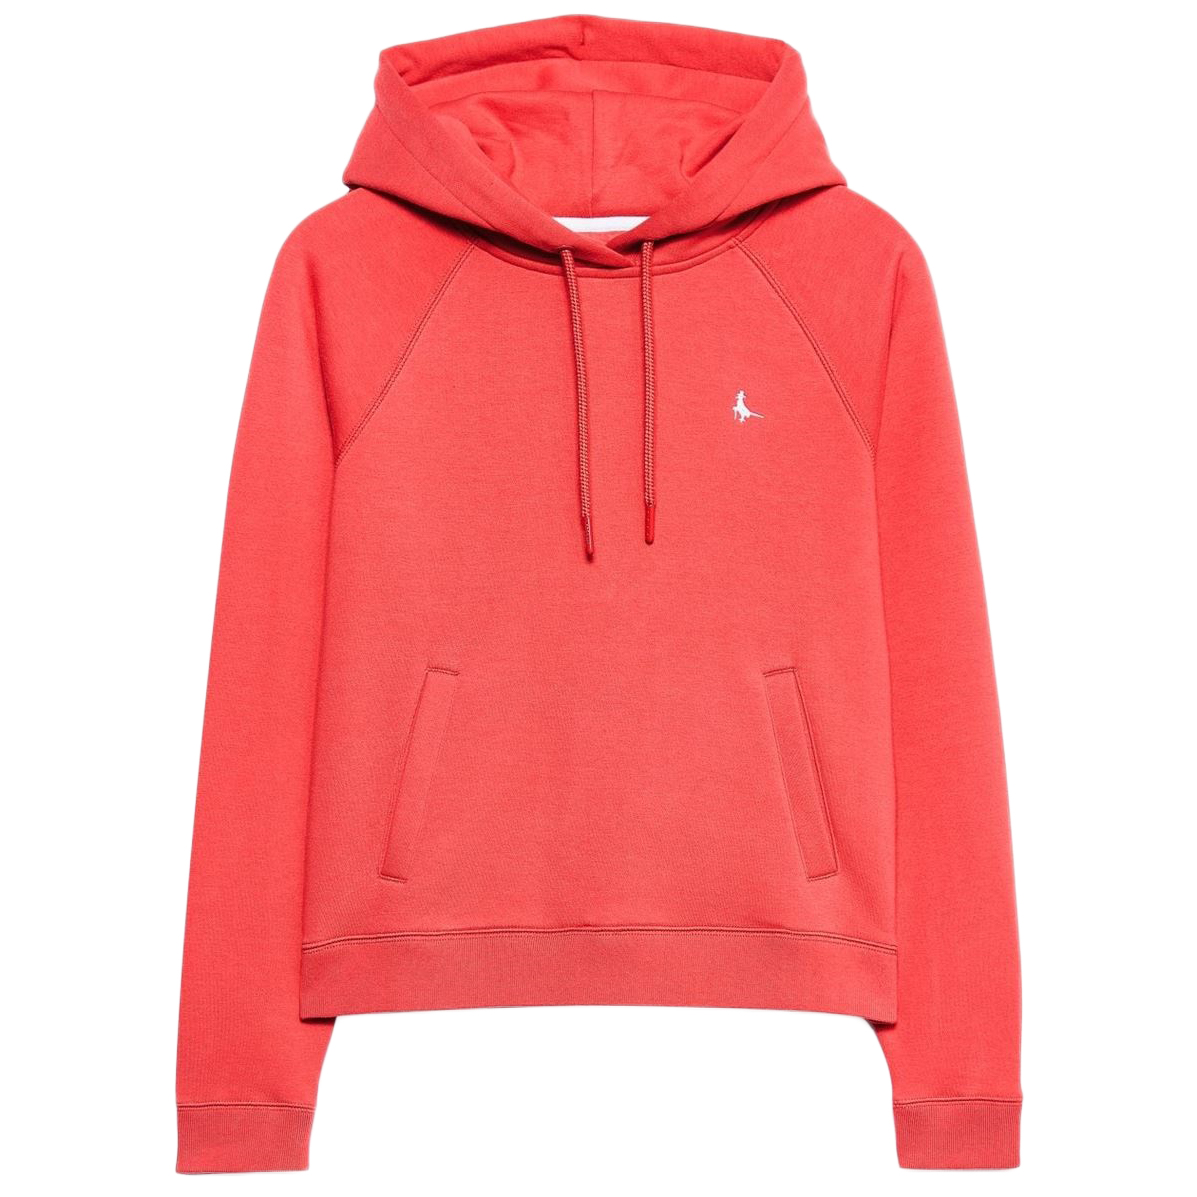 Jack Wills Women's Collingdon Raglan Hoodie - Red, 4